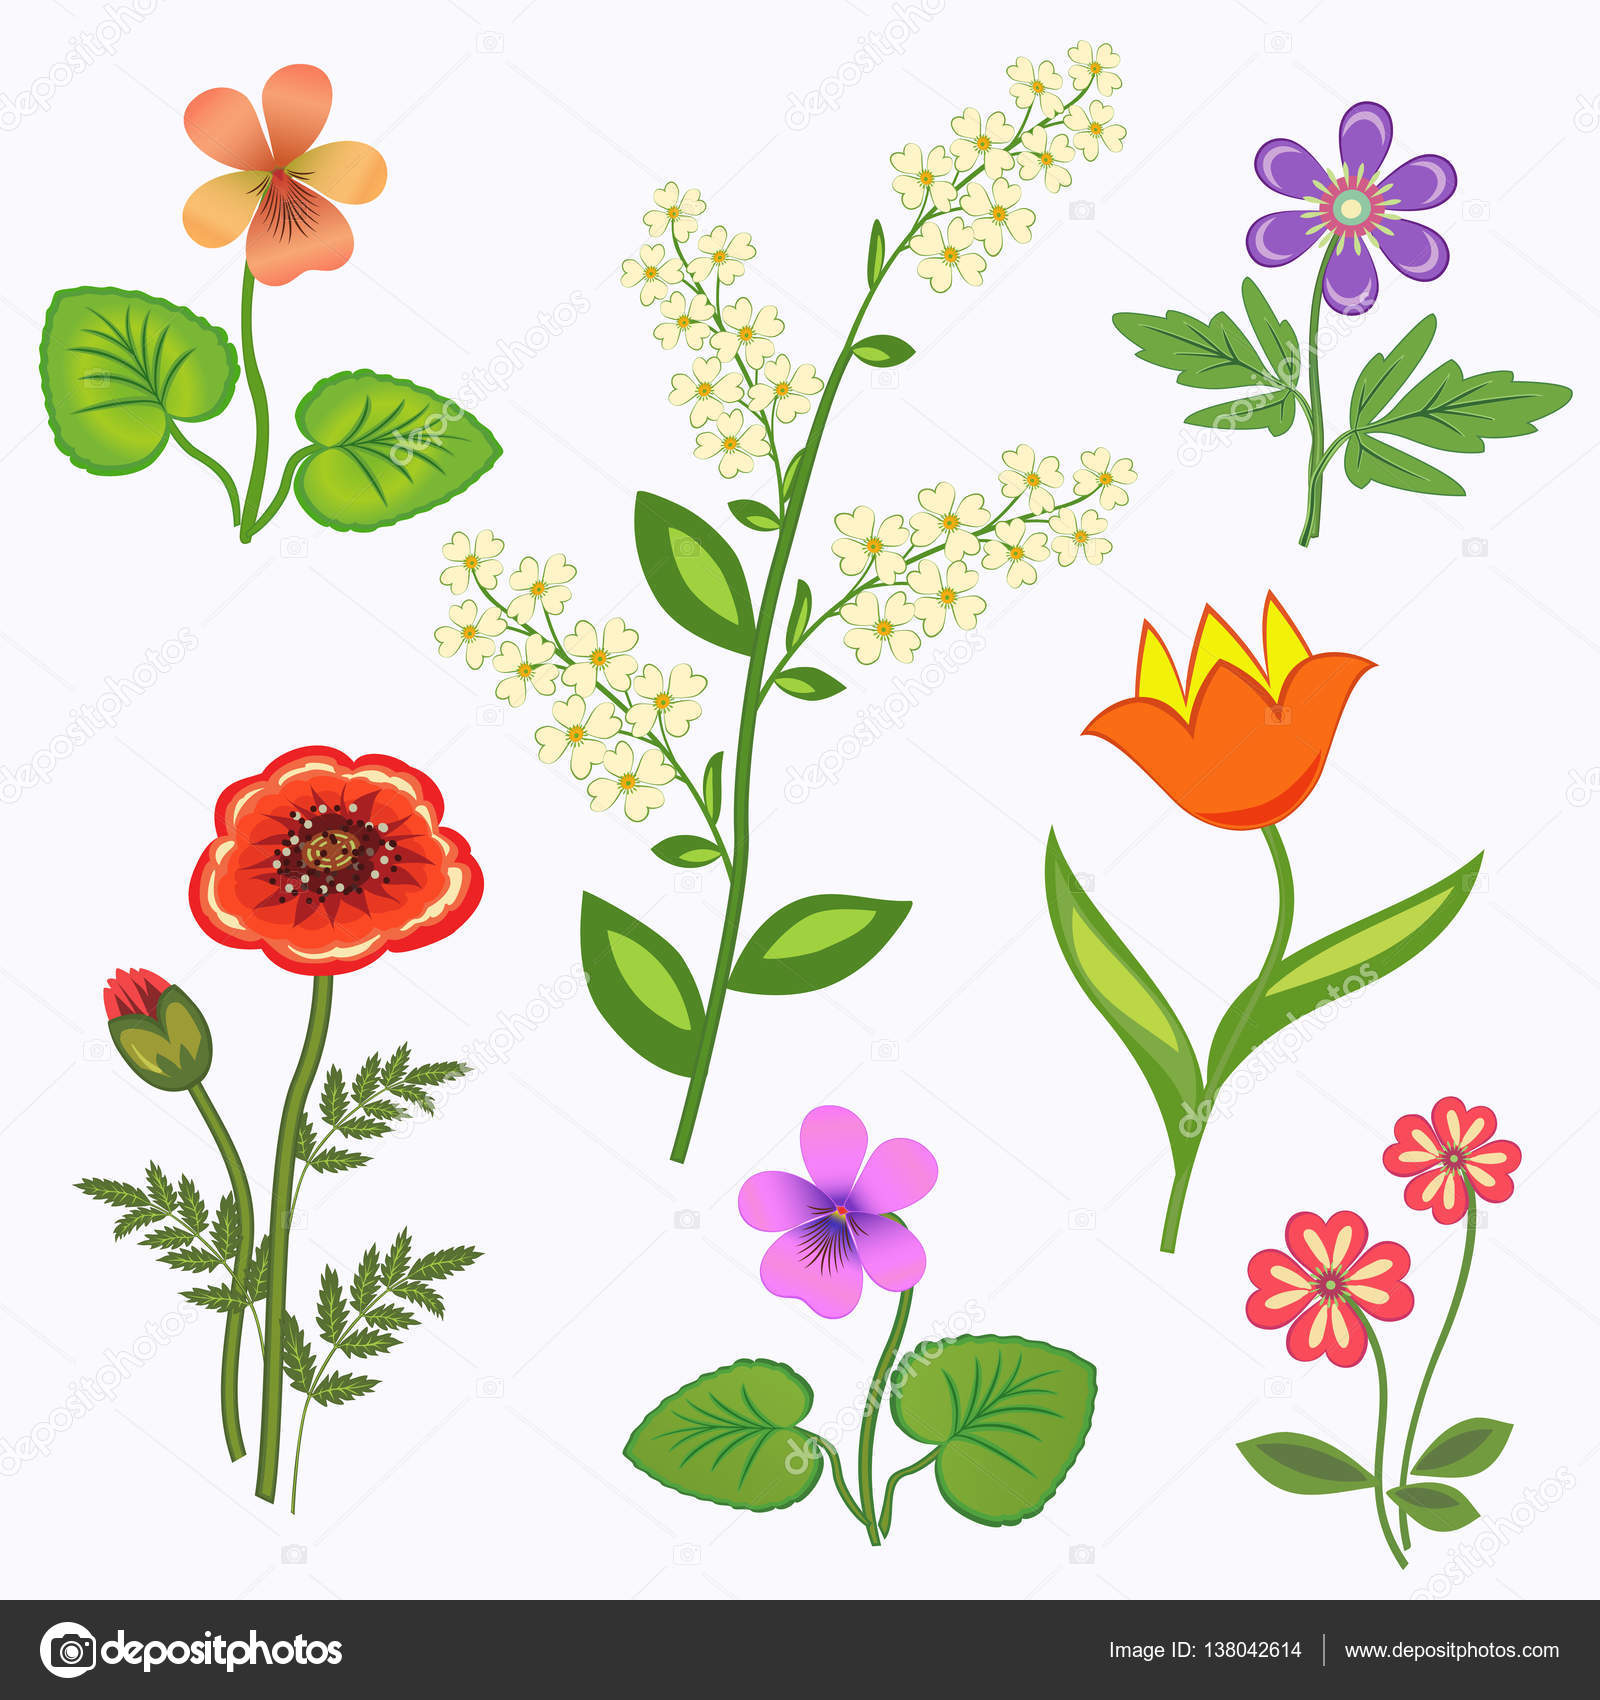 Flower set nasturtium primula viola anemone poppy tulip flower set nasturtium primula viola anemone poppy tulip bird cherry spring flowers floral symbols with leaves color icons may be used in cuisine biocorpaavc